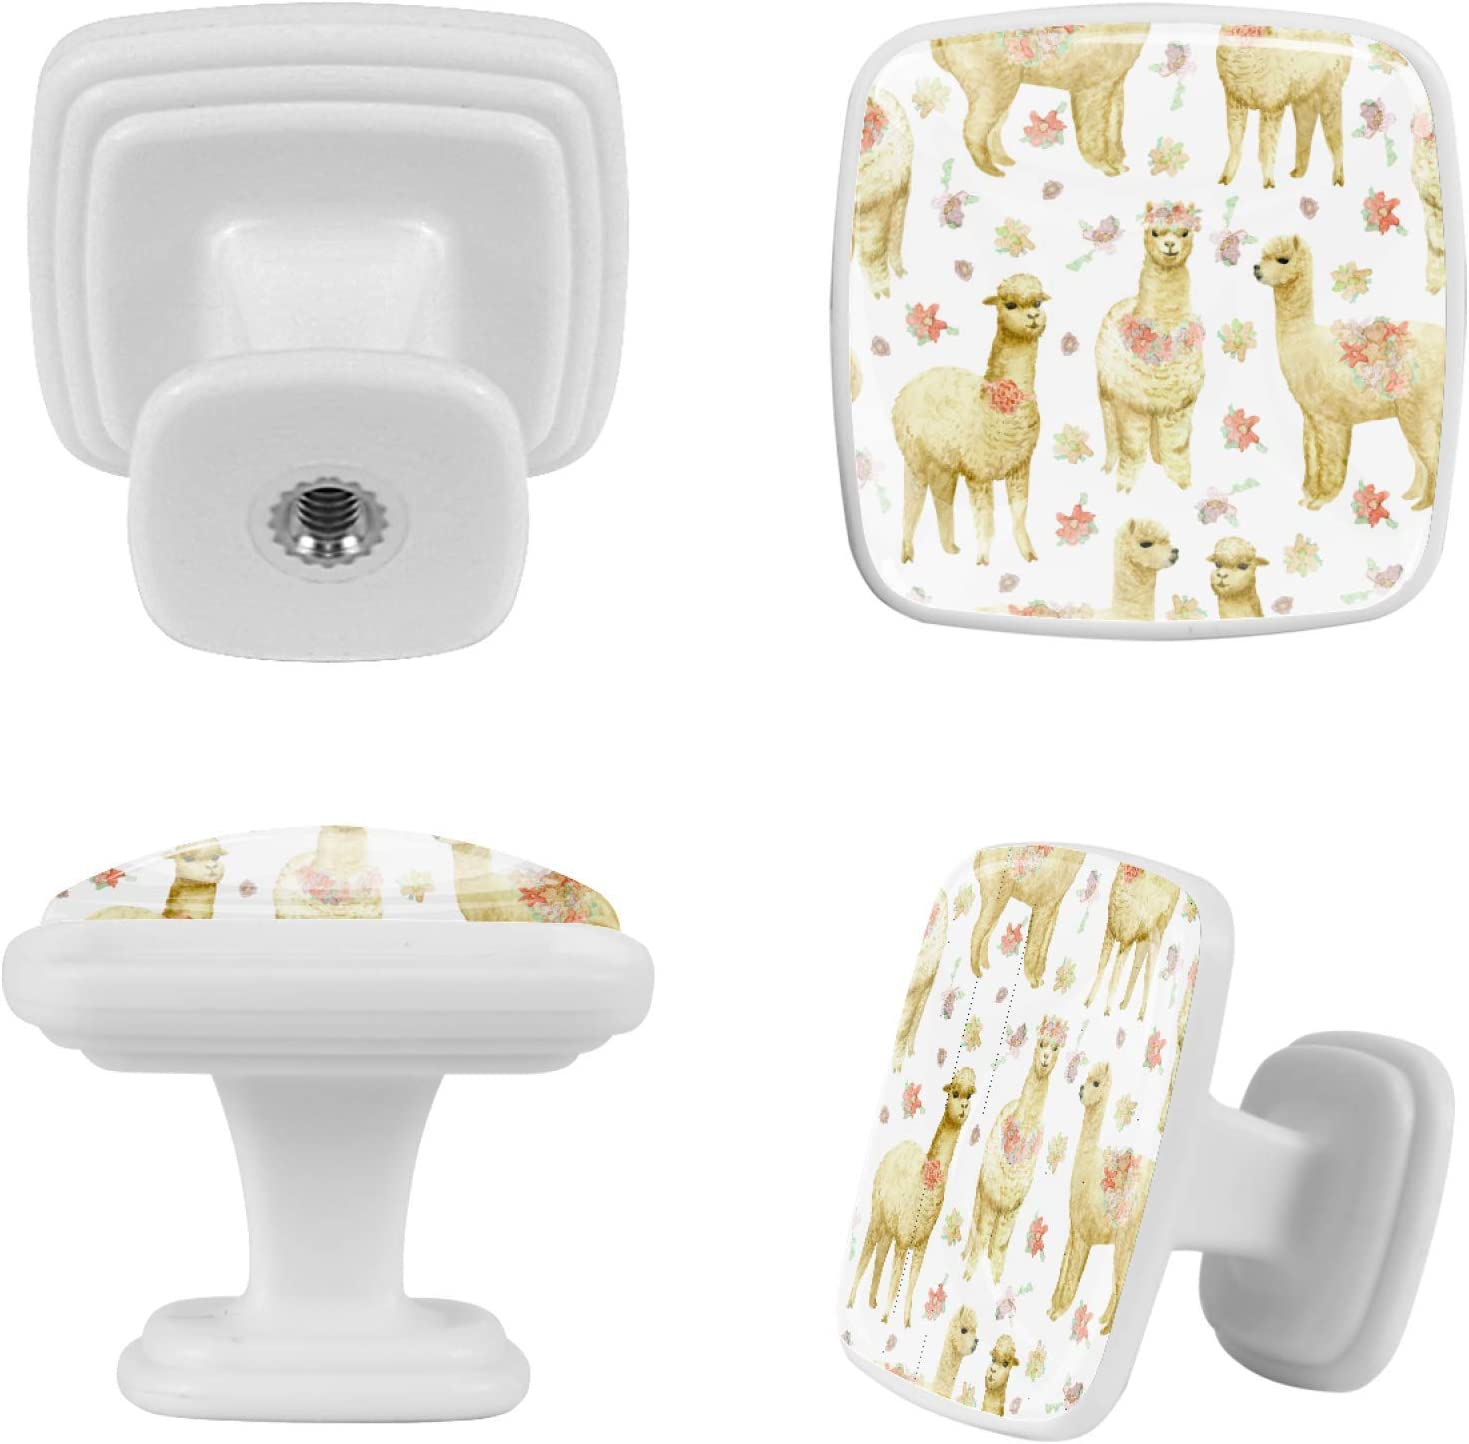 Cabinet Knob Square Door Knobs Mushroom Shape Pull Handle with Screws for Cabinet Wardrobe Drawer Cupboard 4 Pieces White Cartoon Tarot 1.18x0.82x0.78 in